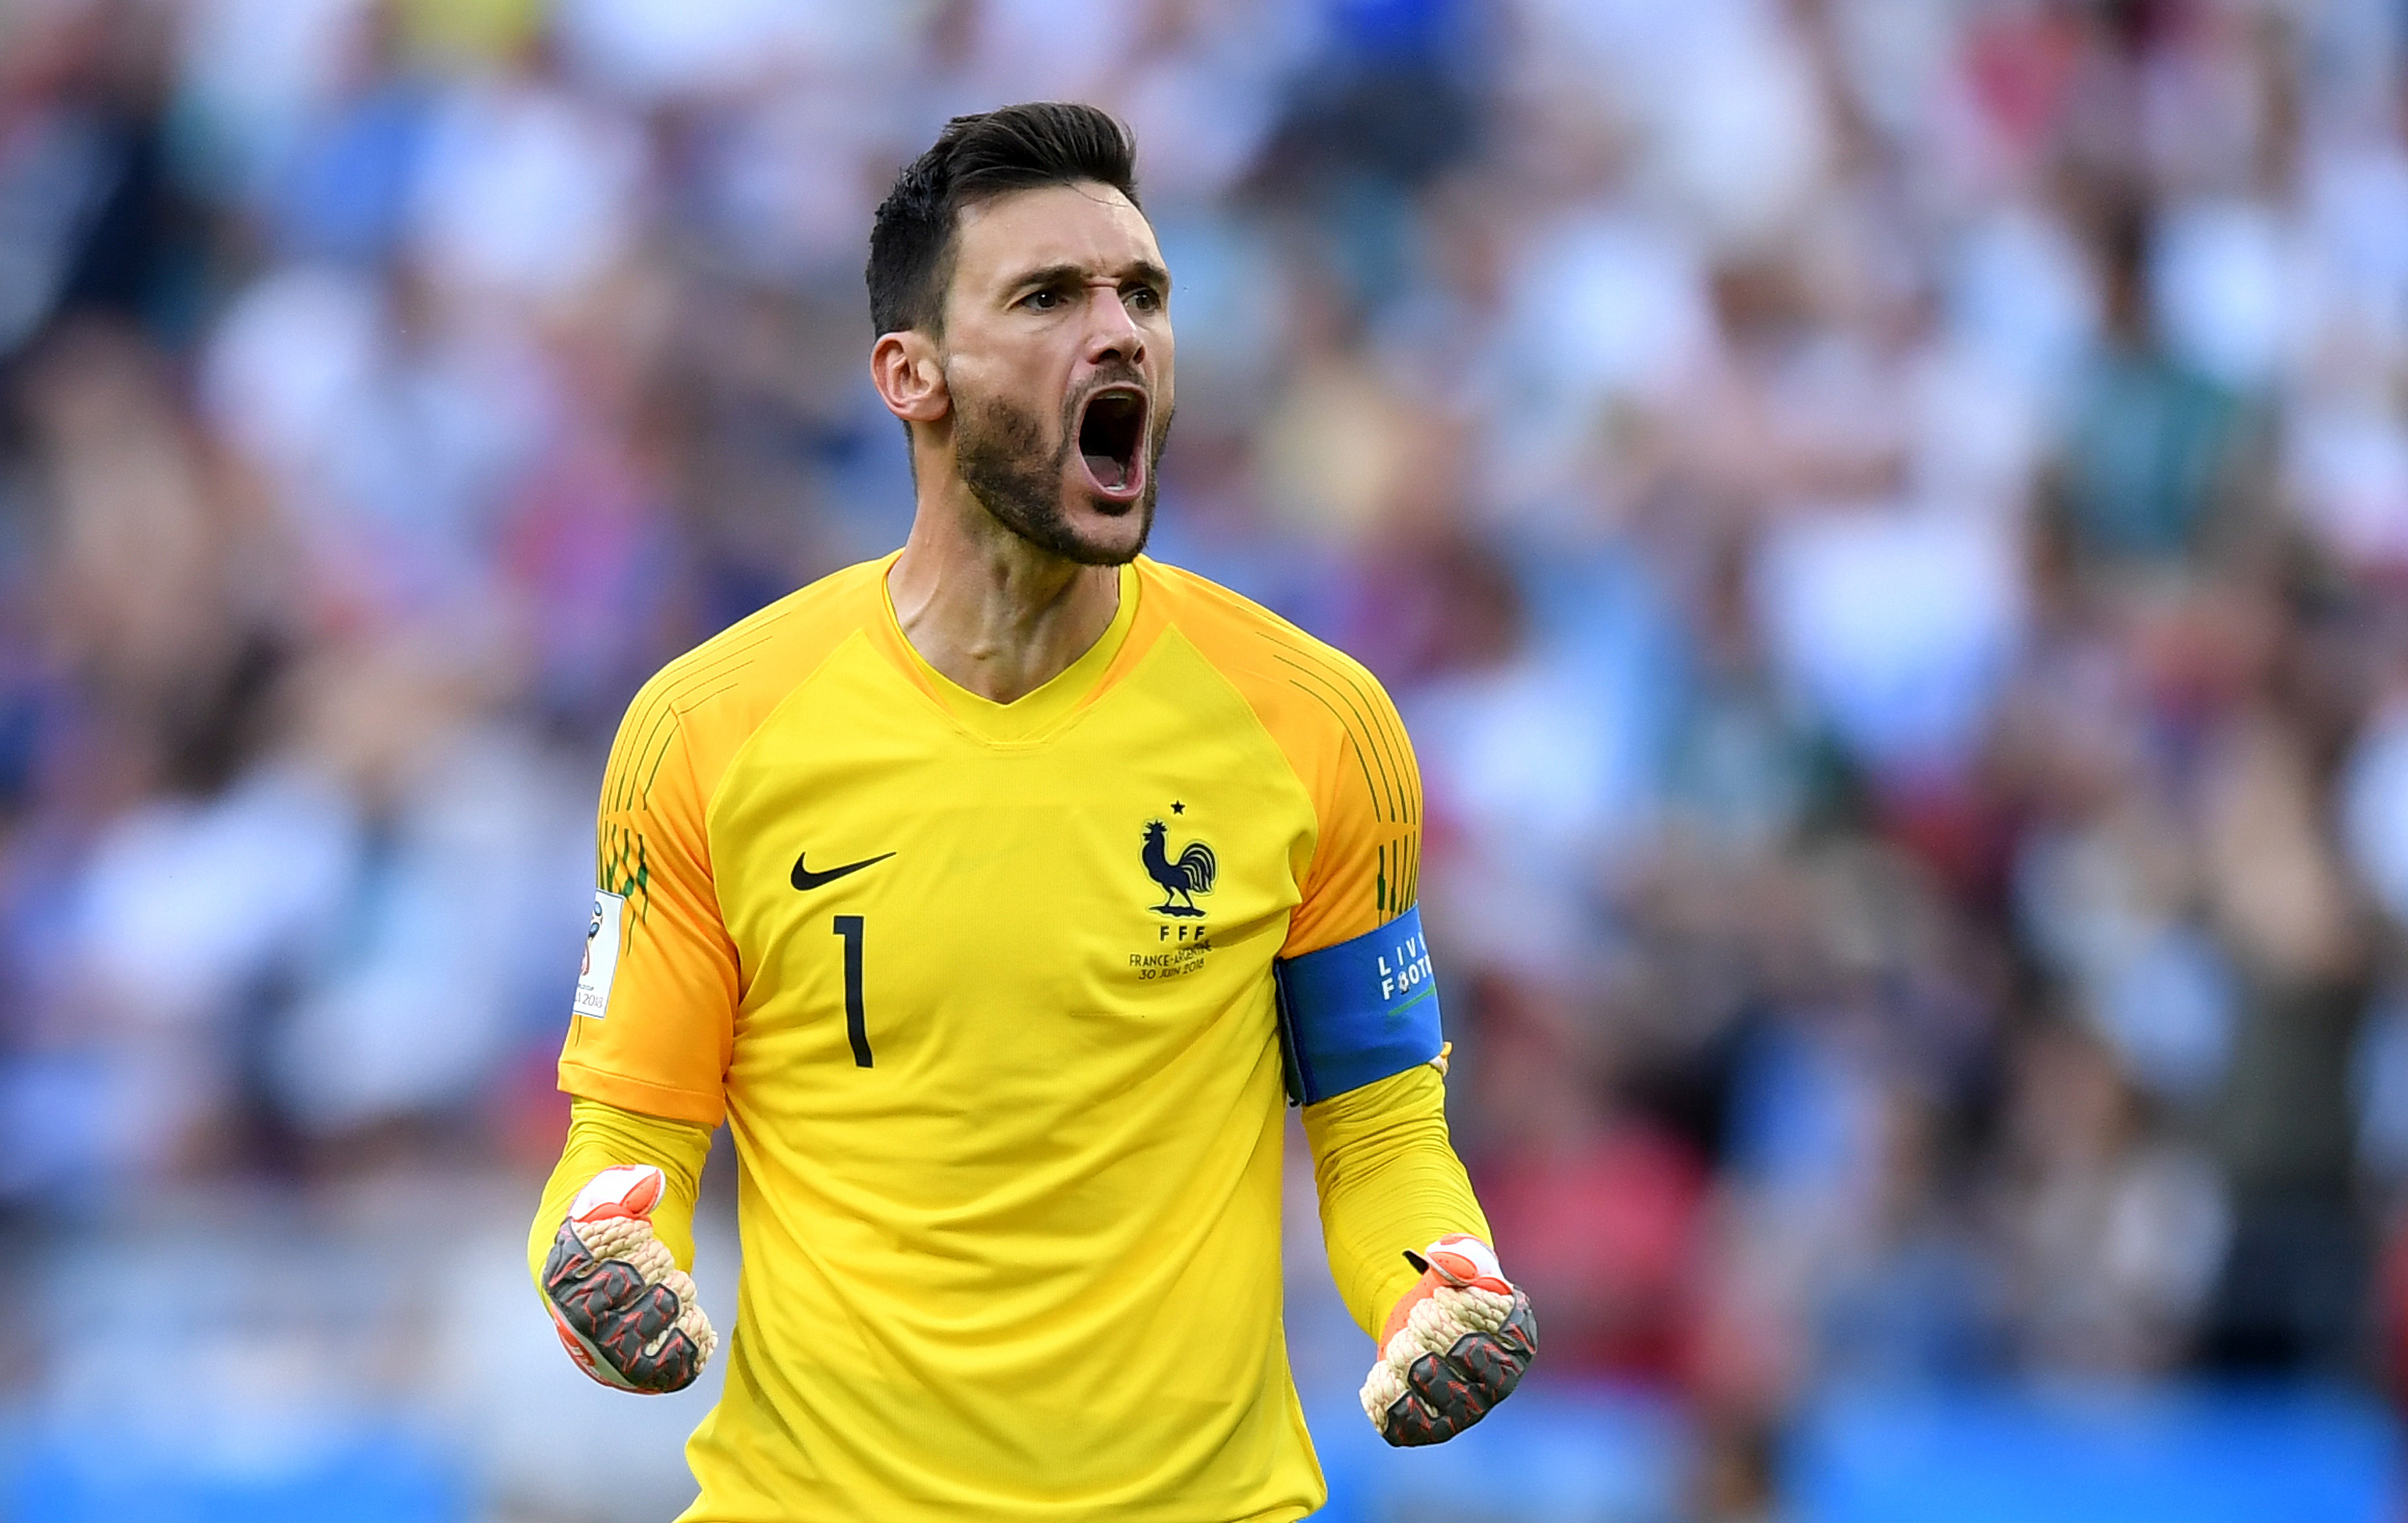 Hugo Lloris to remain as Tottenham Hotspur captain, says Mauricio Pochettino